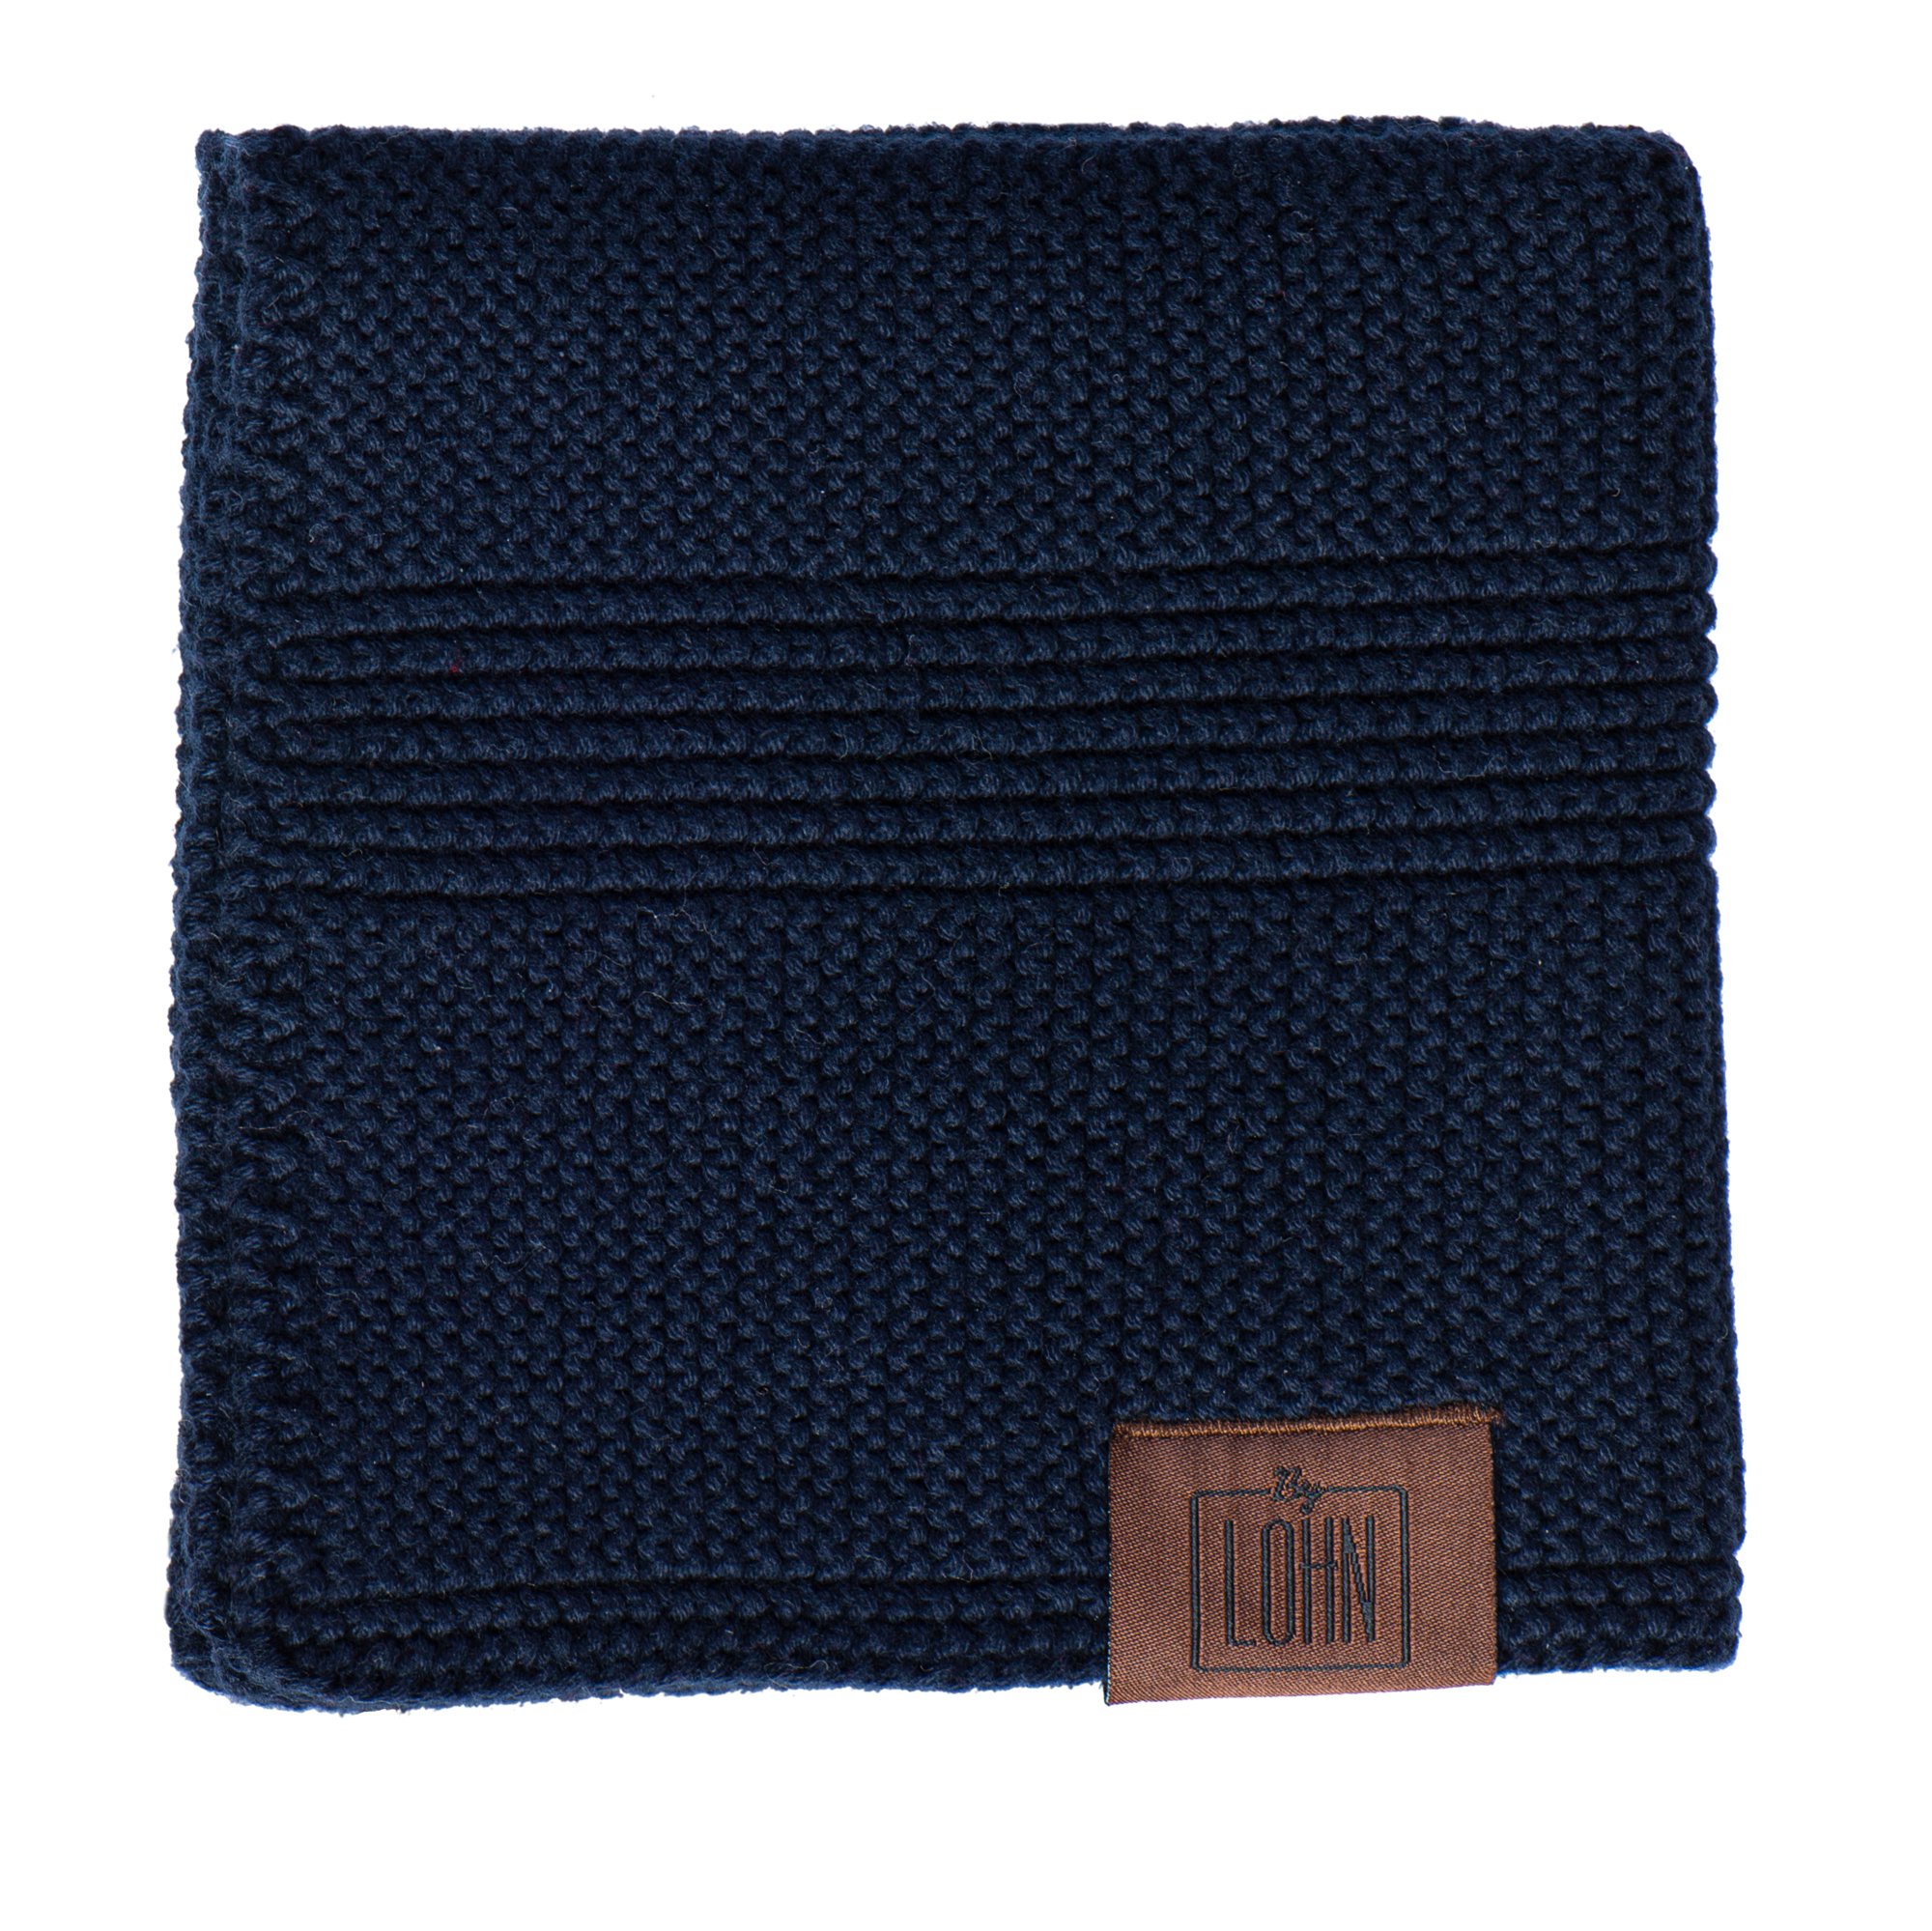 by LOHN - All round cloth 25 x 25, 2 pack